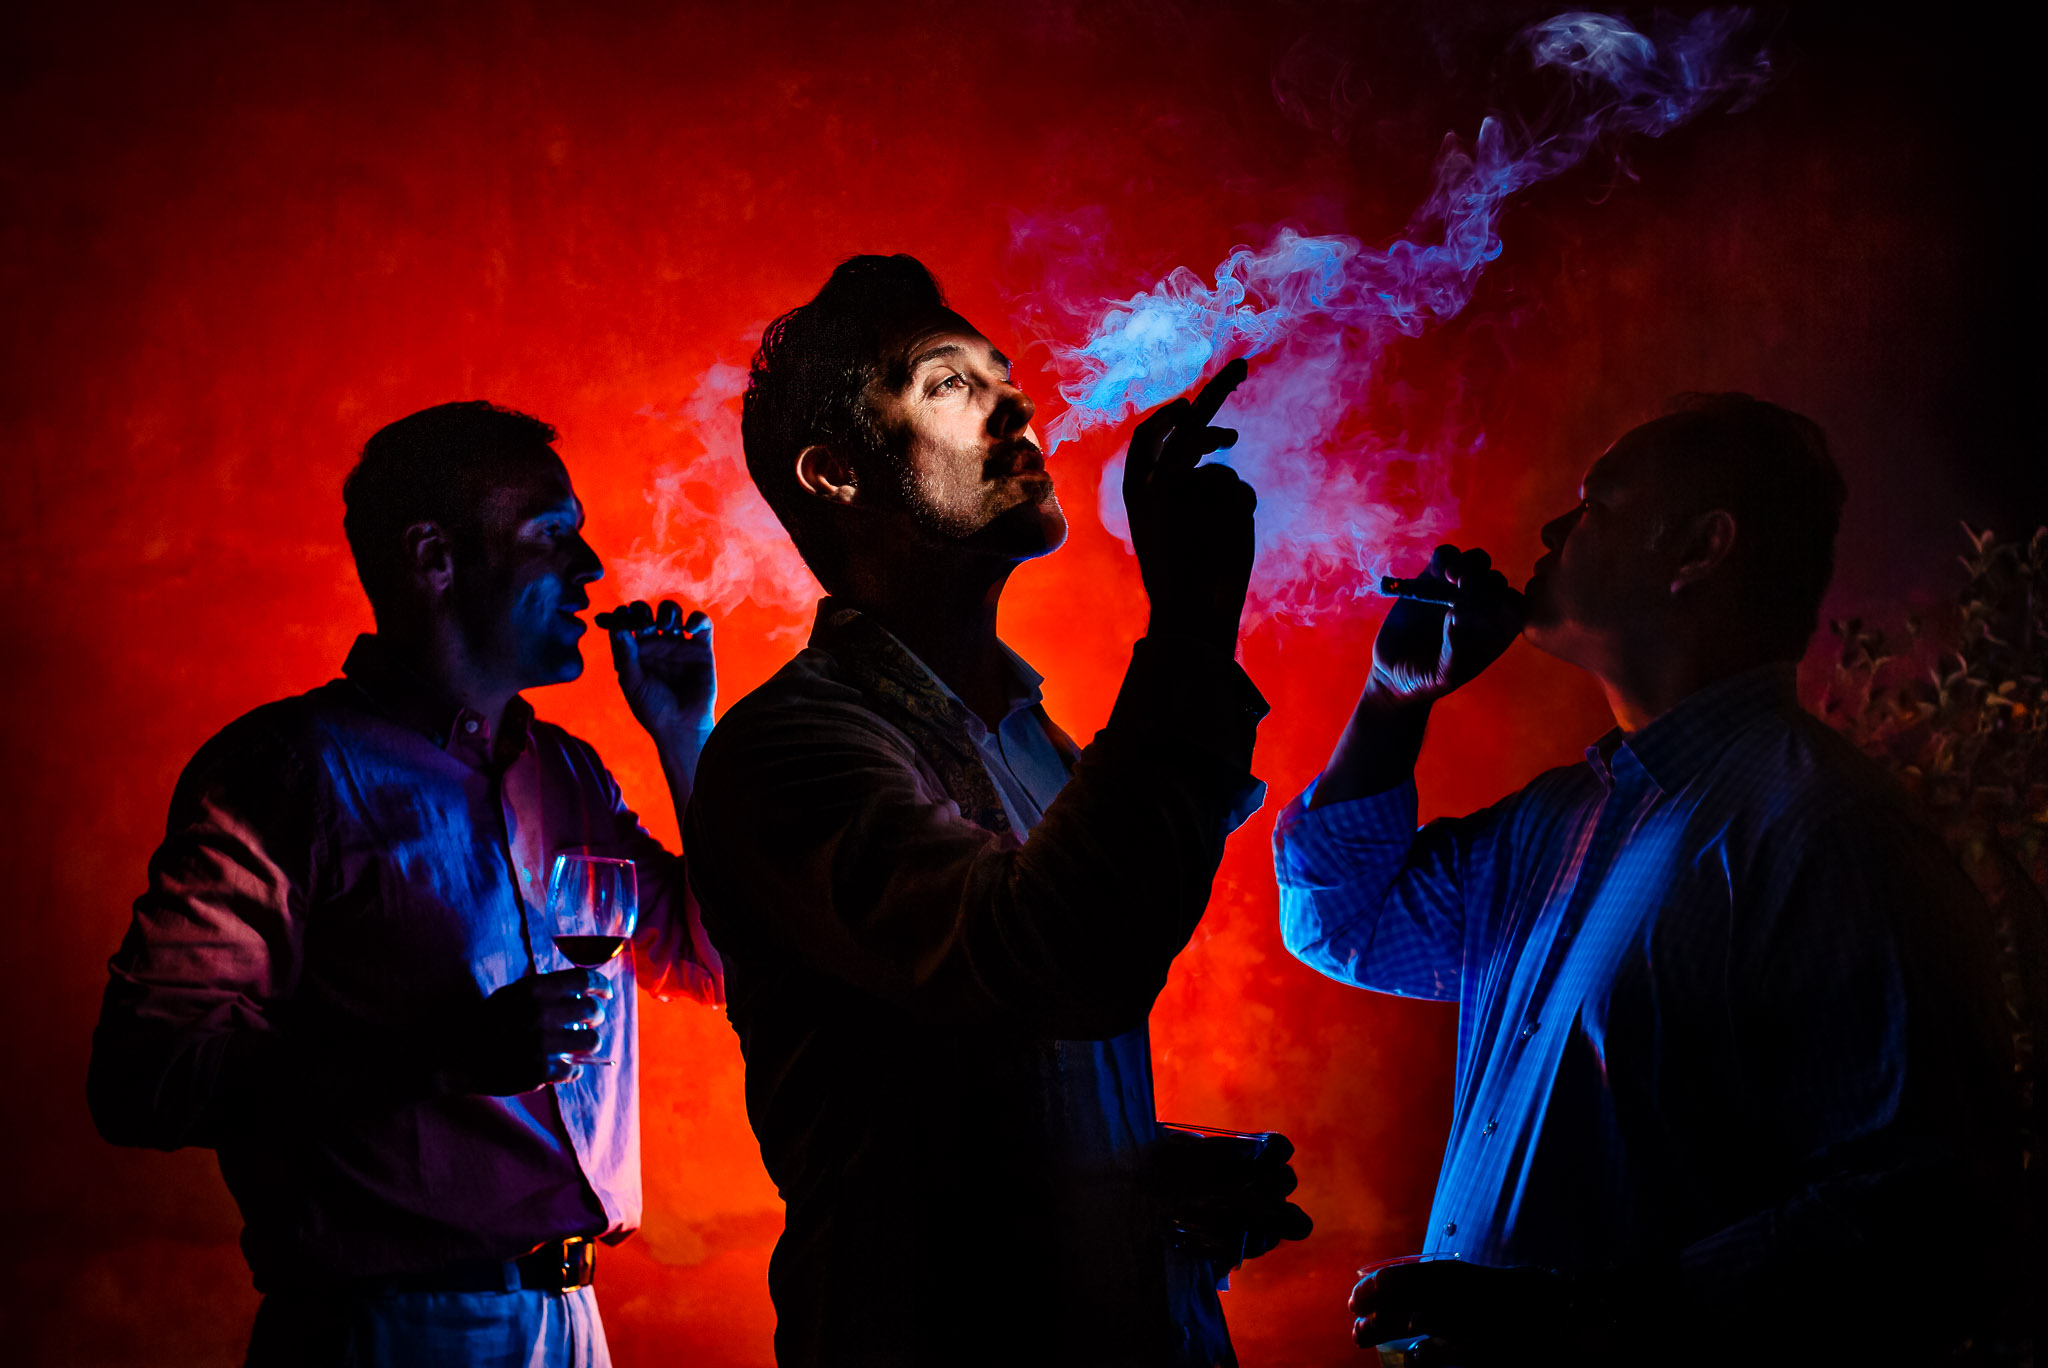 Groomsmen smoking cigars in dramatic colored light in Italy